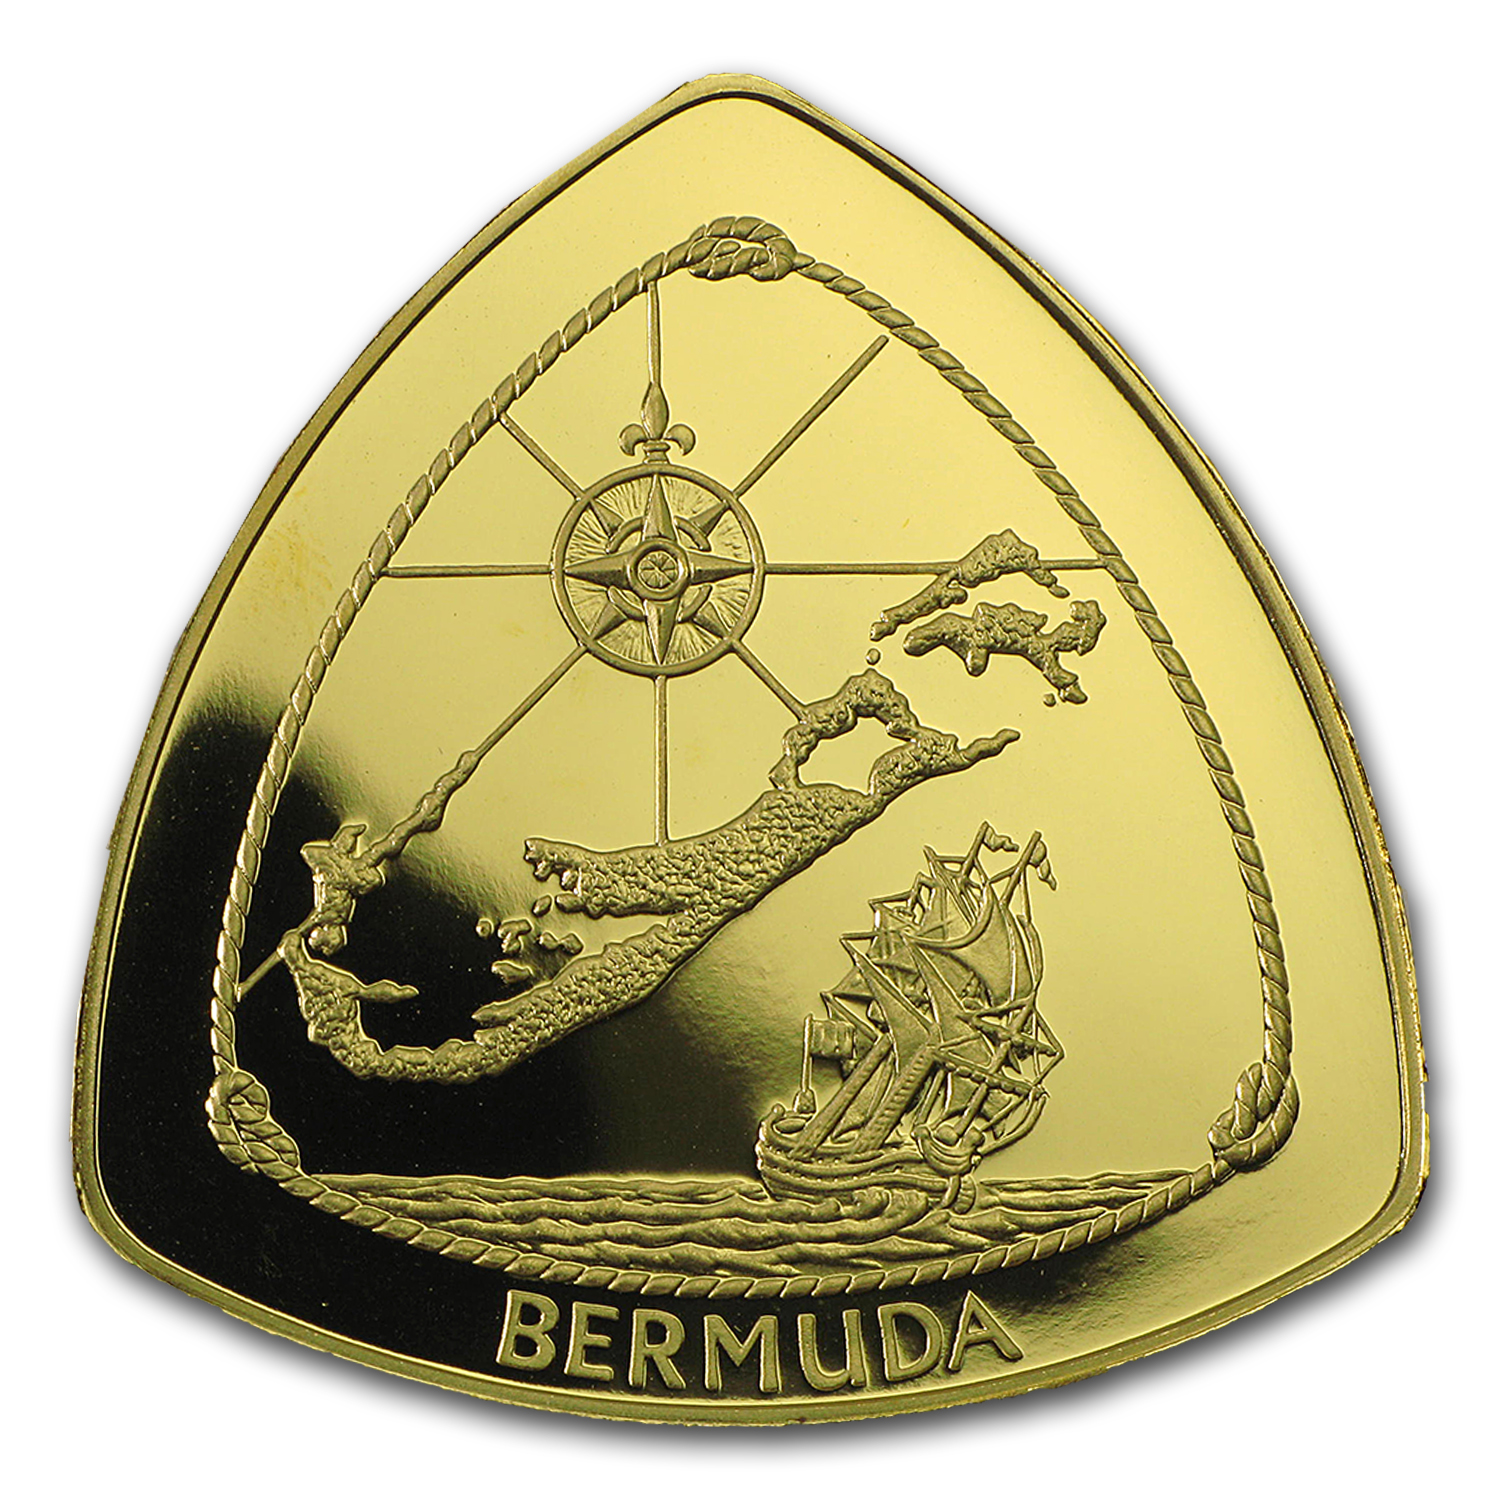 1996 Bermuda 1/2 oz Proof Gold $30 Triangle